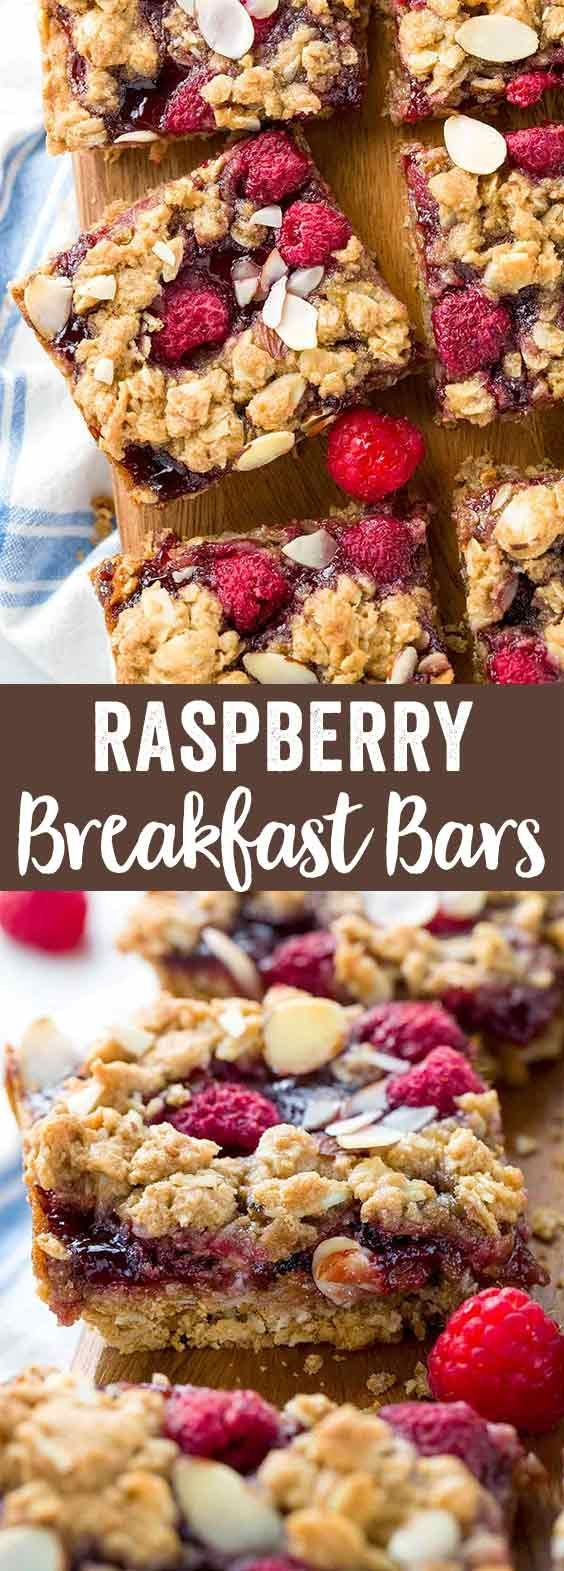 Homemade raspberry breakfast bars are a healthy way to fuel your day! These vegan-friendly baked bars are filled with fresh raspberries, jam, and oats.  via @foodiegavin